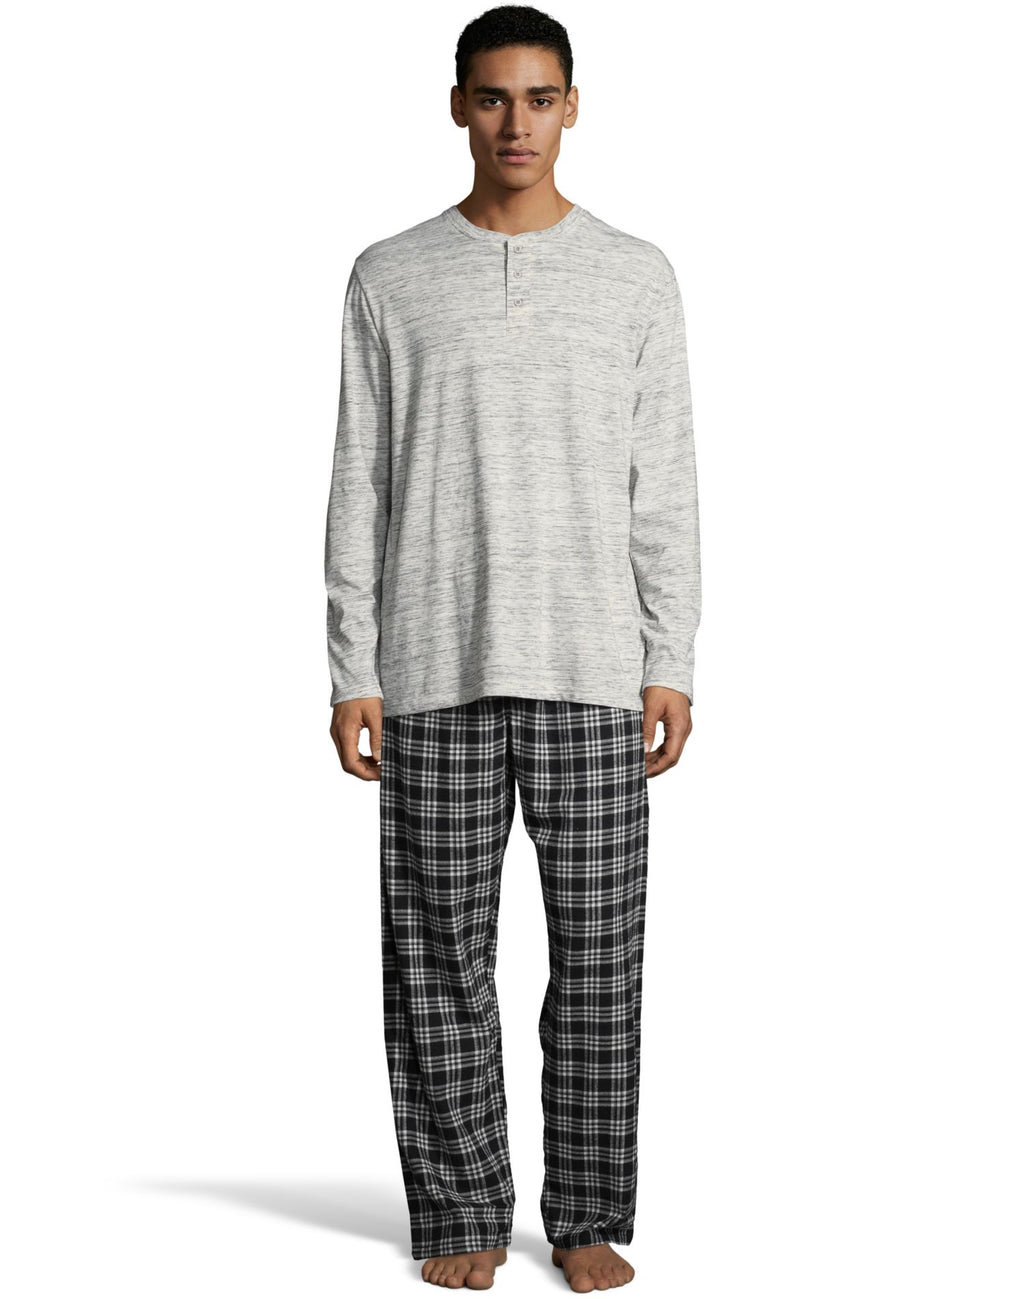 Hanes Mens Henley Crew with Flannel Pant PJ Set